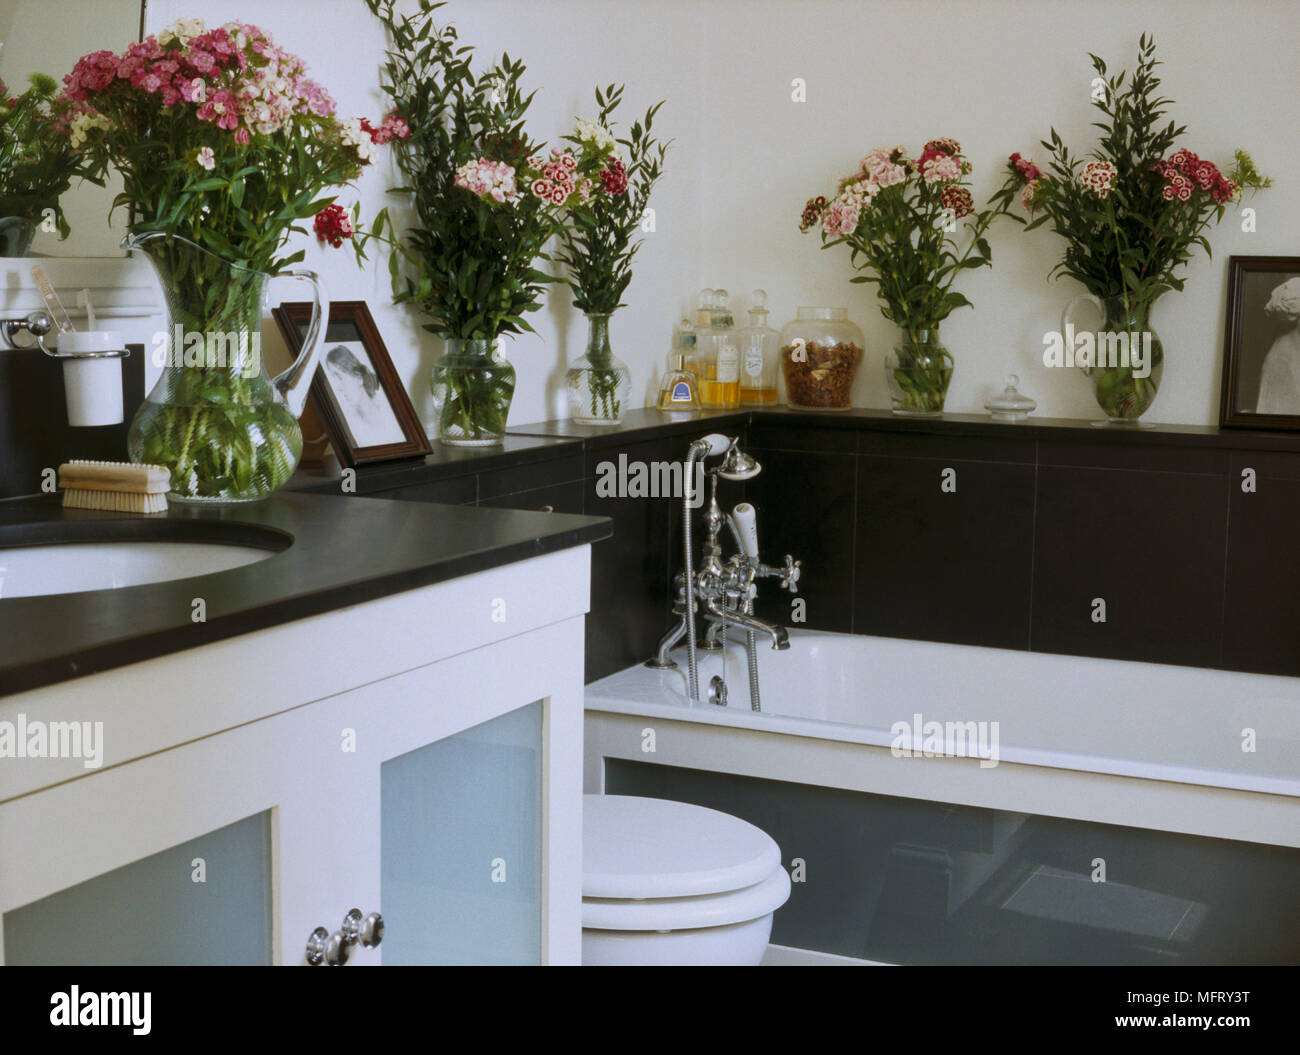 Bath Shelf Country Stock Photos & Bath Shelf Country Stock Images ...